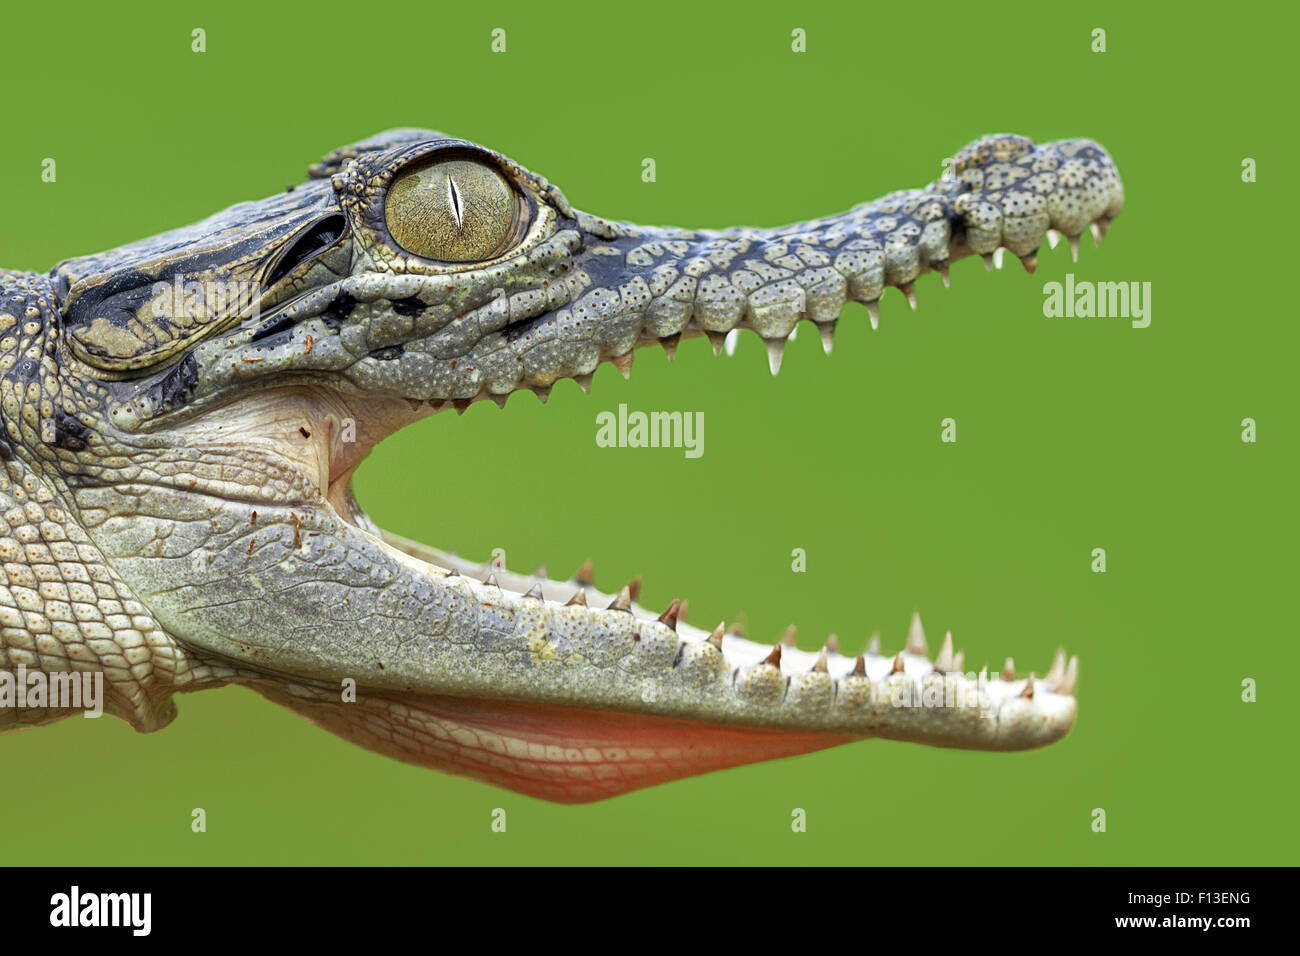 Close up of open mouthed crocodile Photo Stock